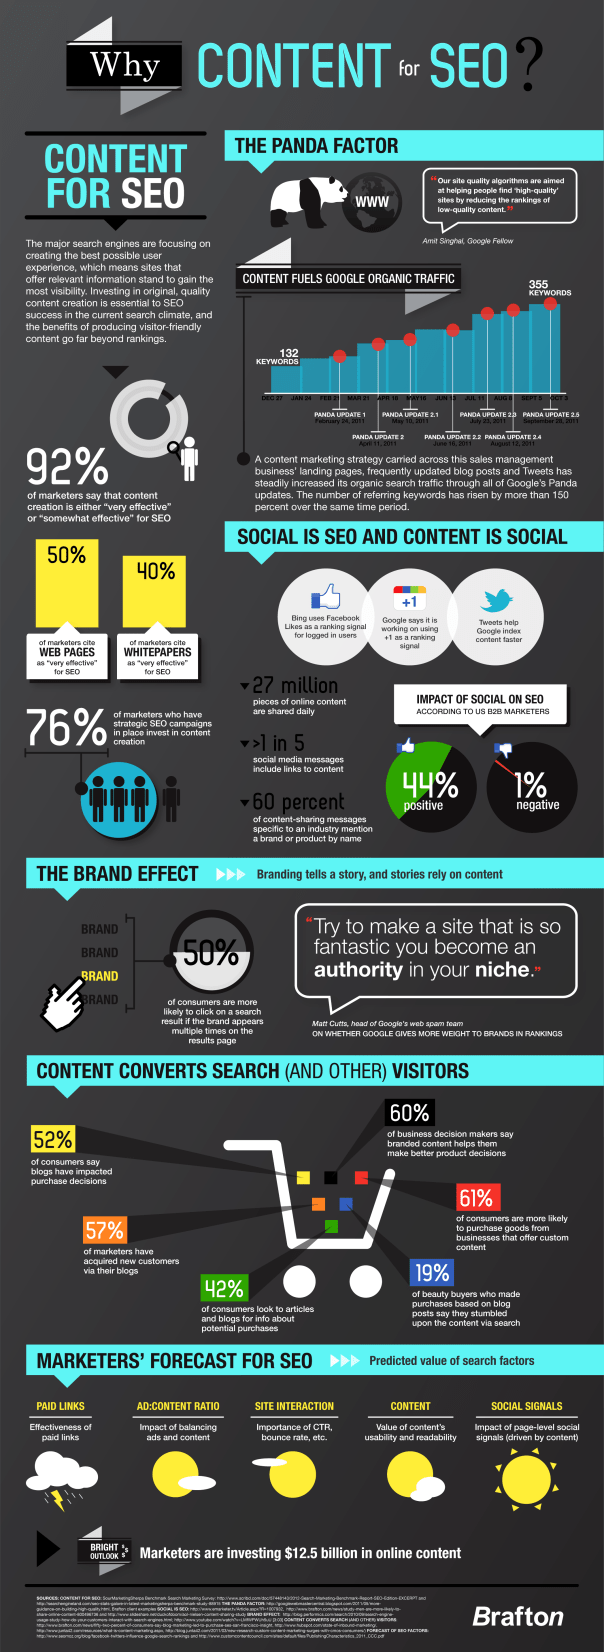 Why Content for SEO infographic